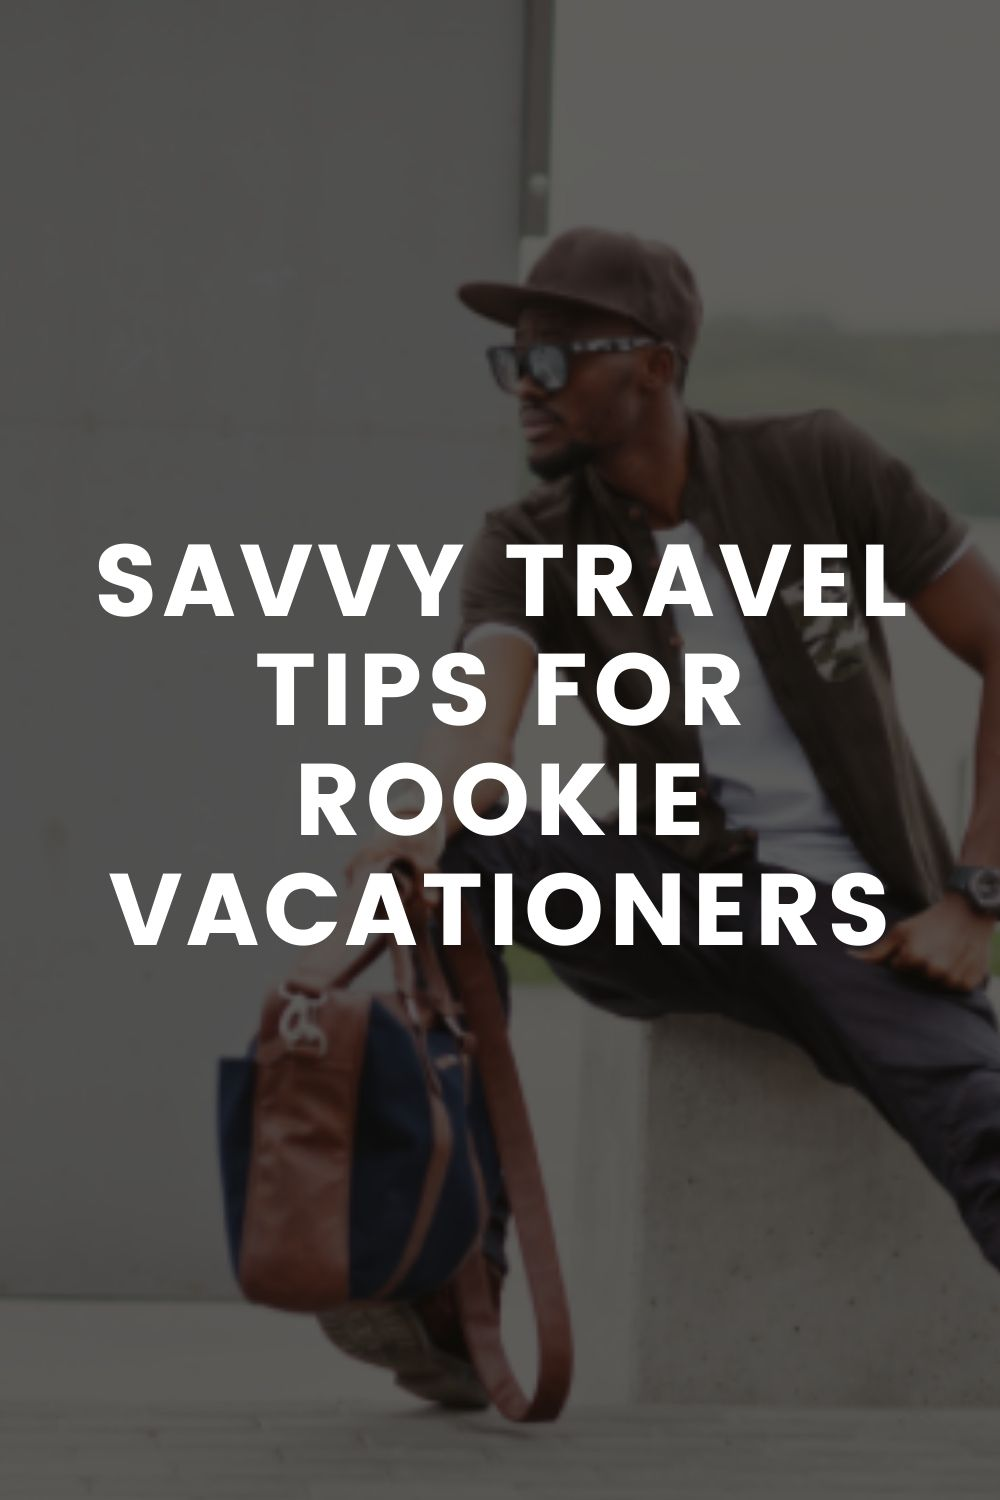 Savvy Travel Tips for Rookie Vacationers